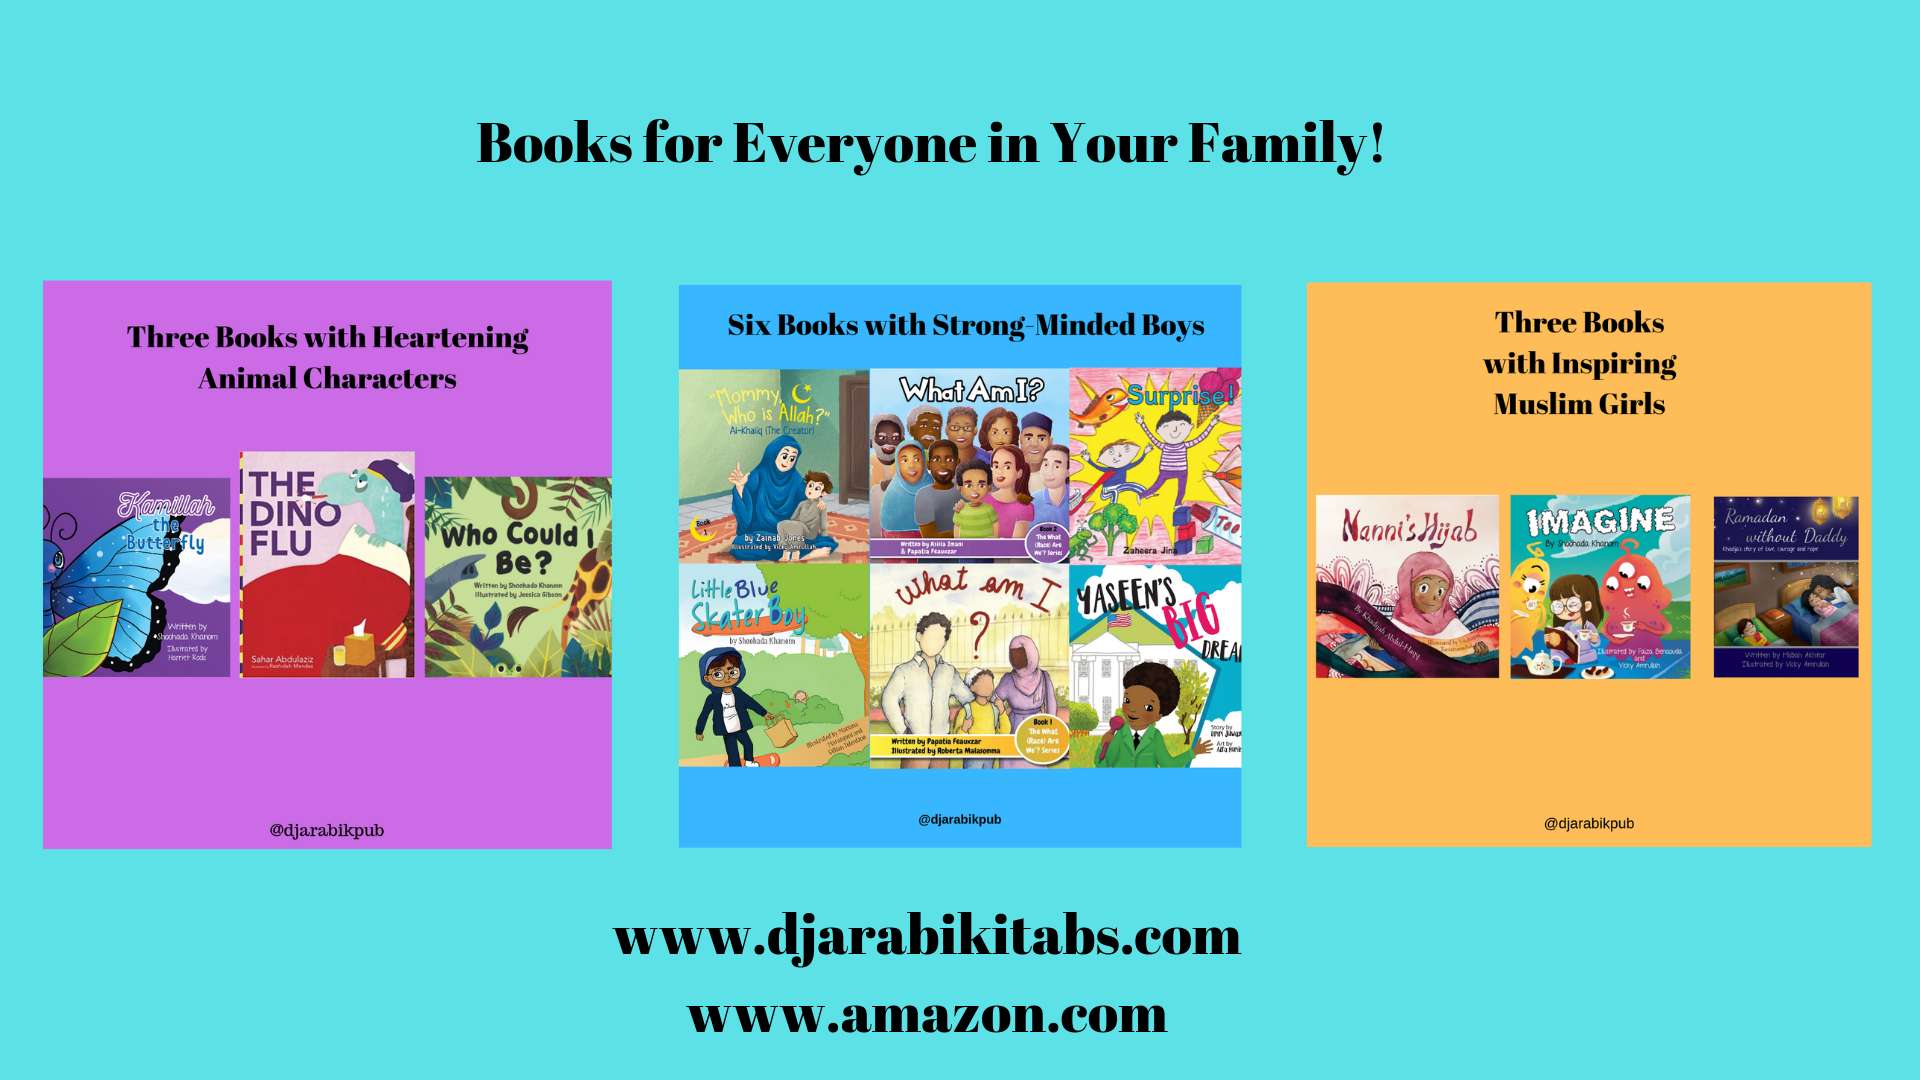 books for everyone in your family 1.png